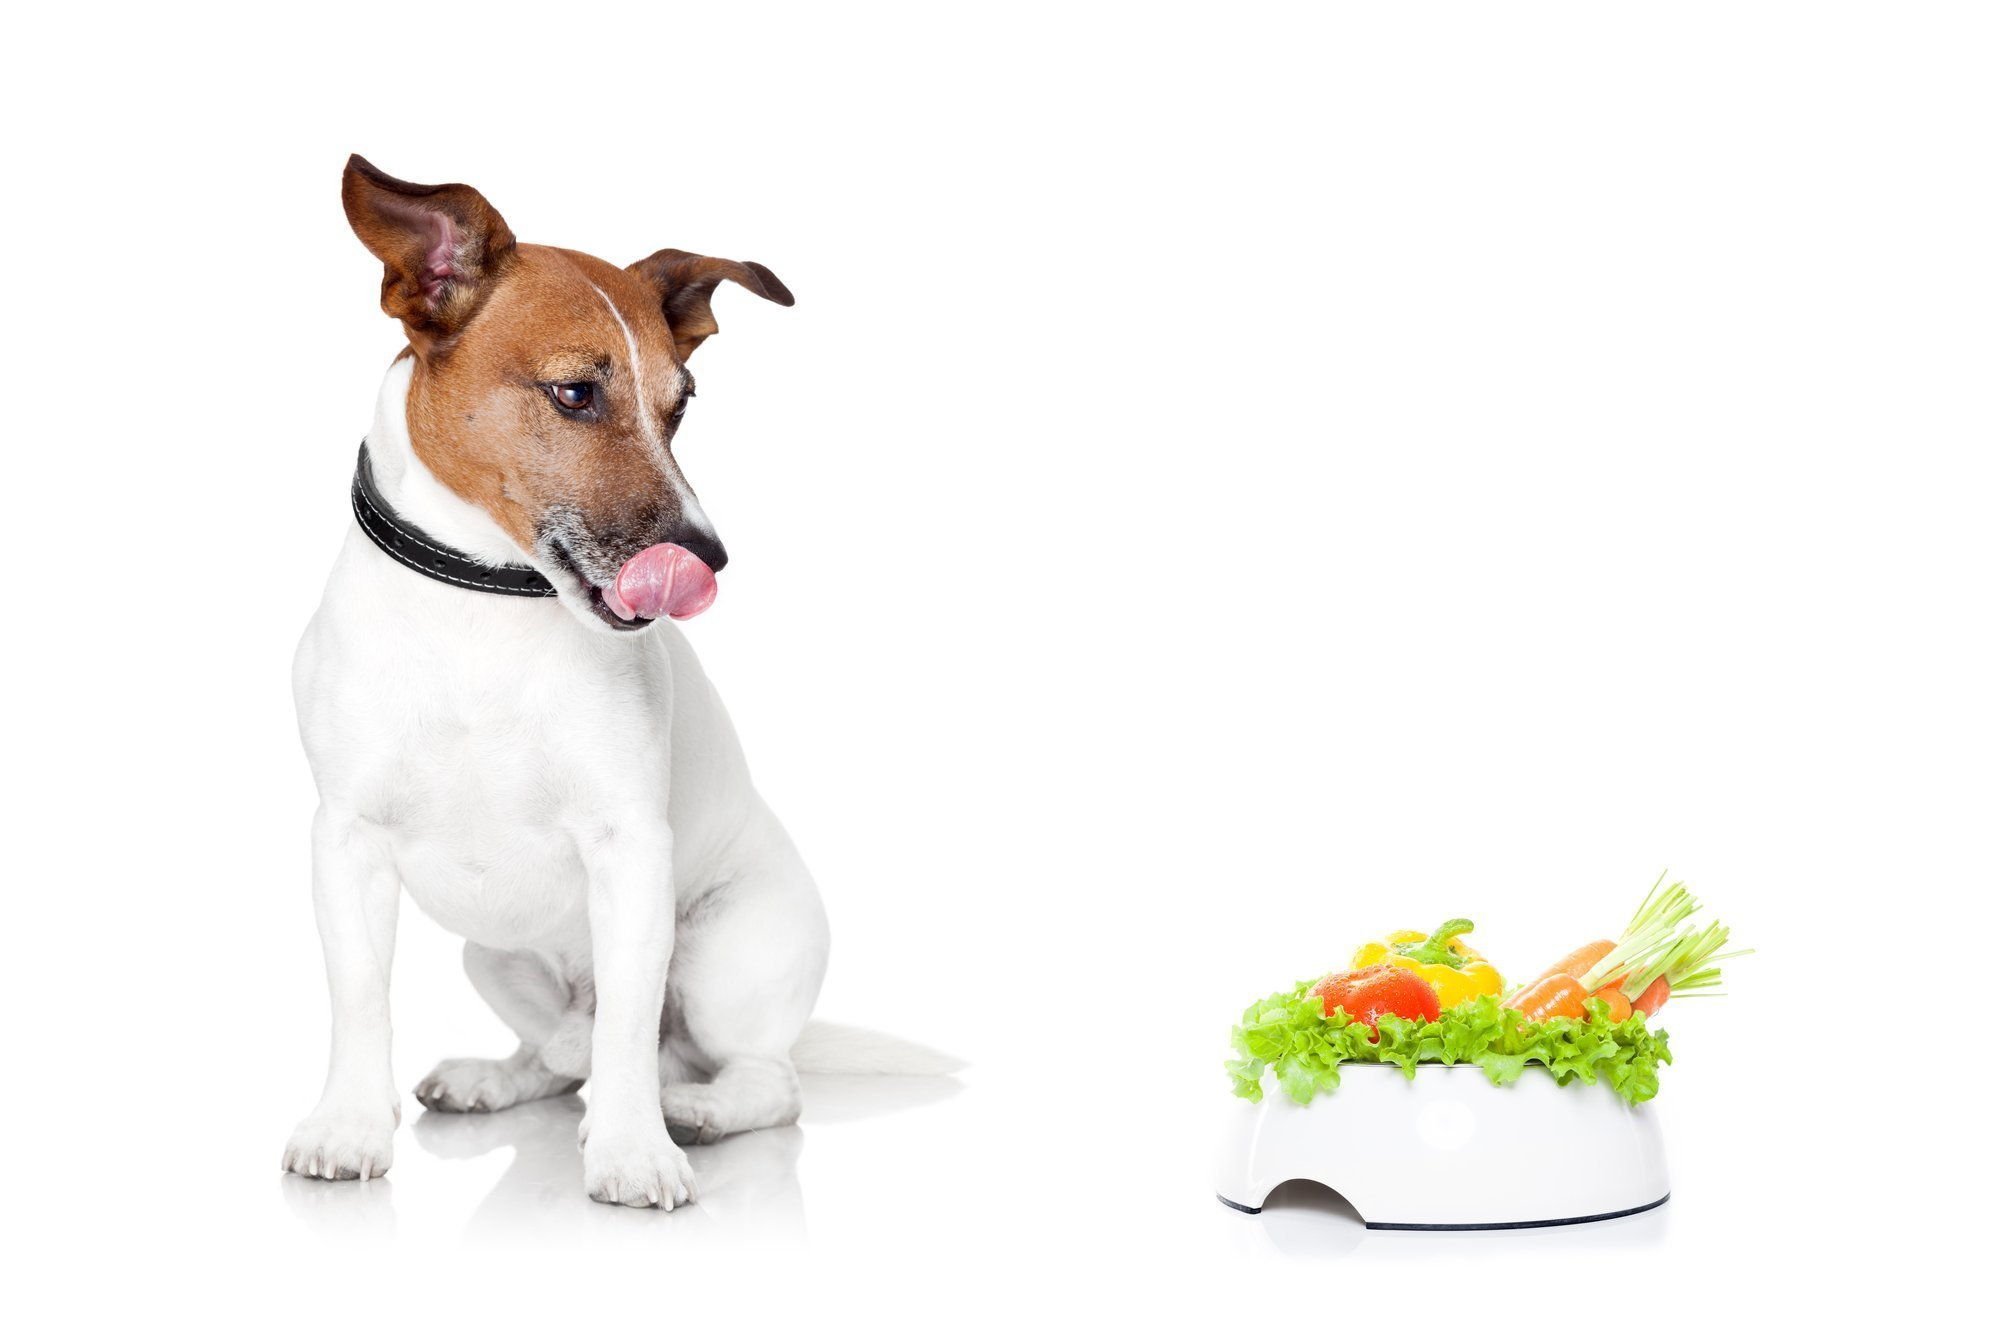 Fruits and Veggies Dogs Can and Can't Eat